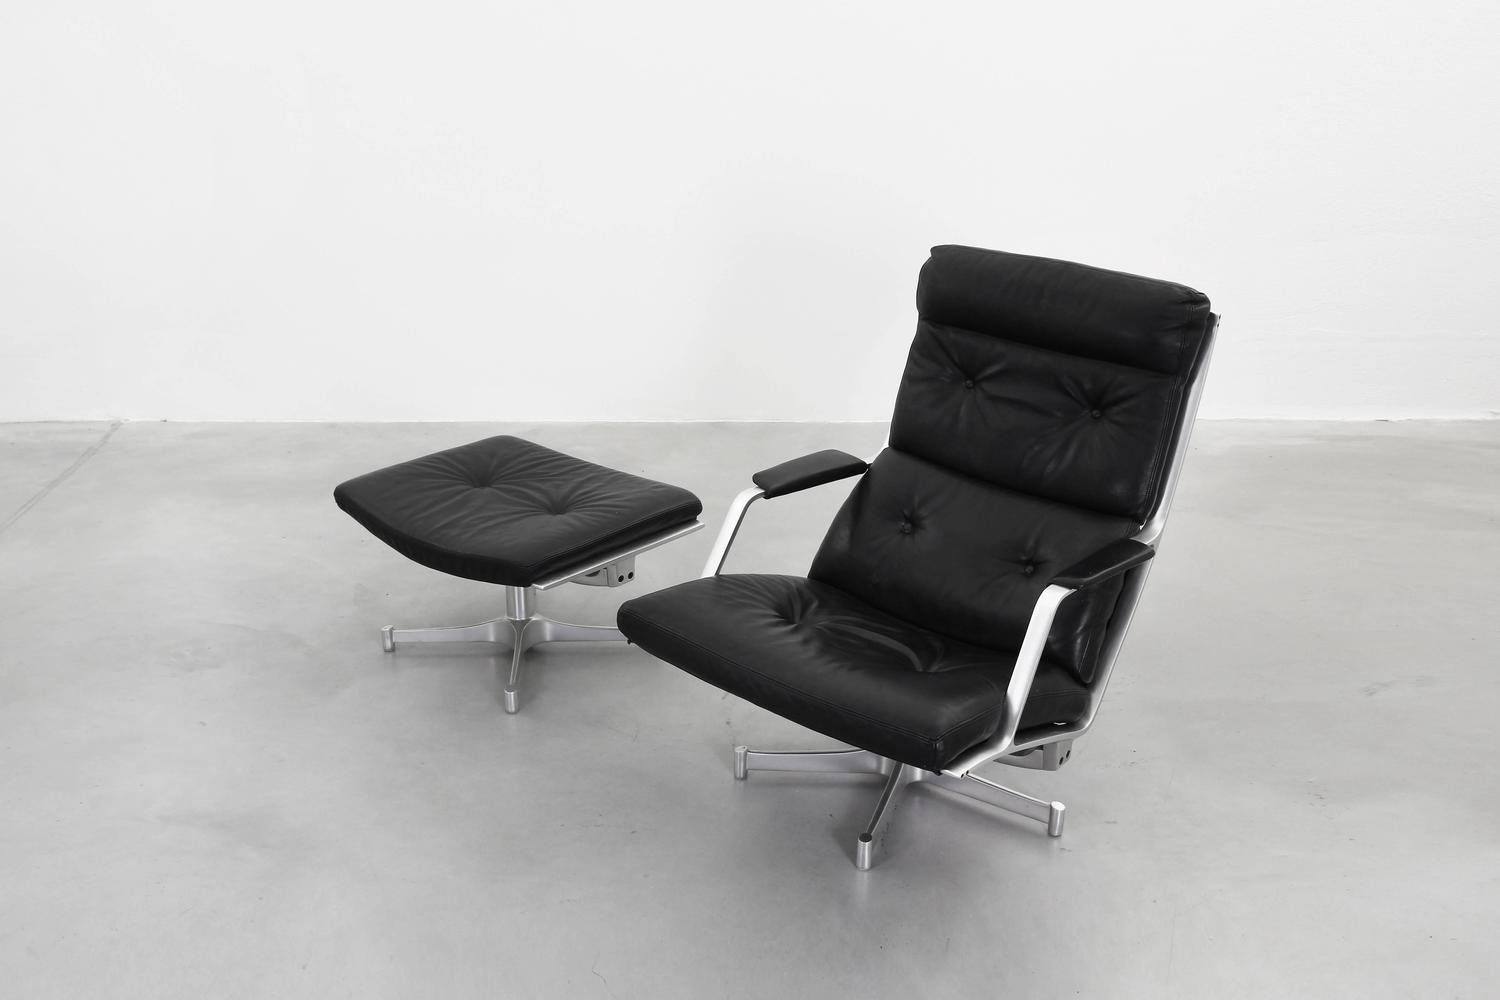 Lounge chair with ottoman by fabricius and kastholm for for Lounge chair kopie